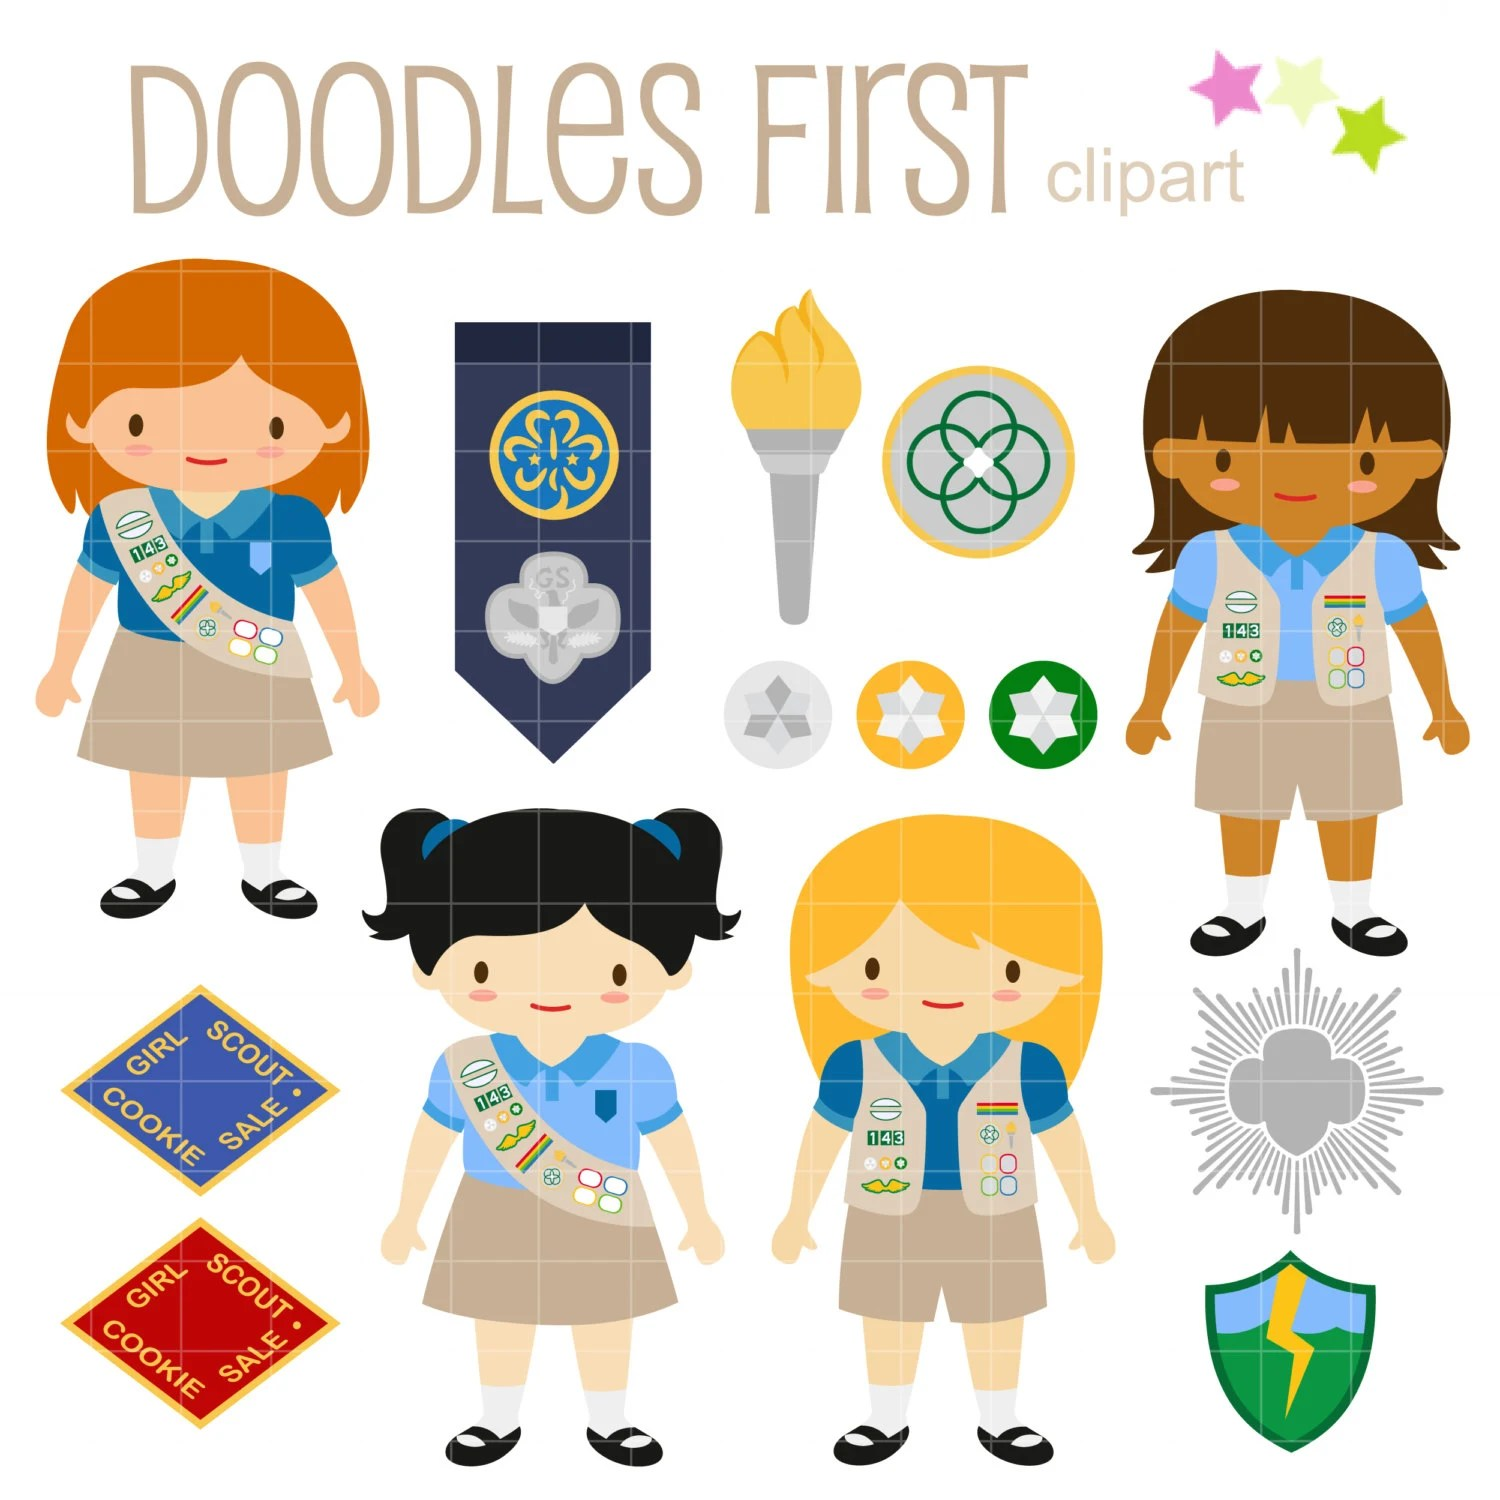 Cadette Girl Scout Clip Art For Scrapbooking Card Making